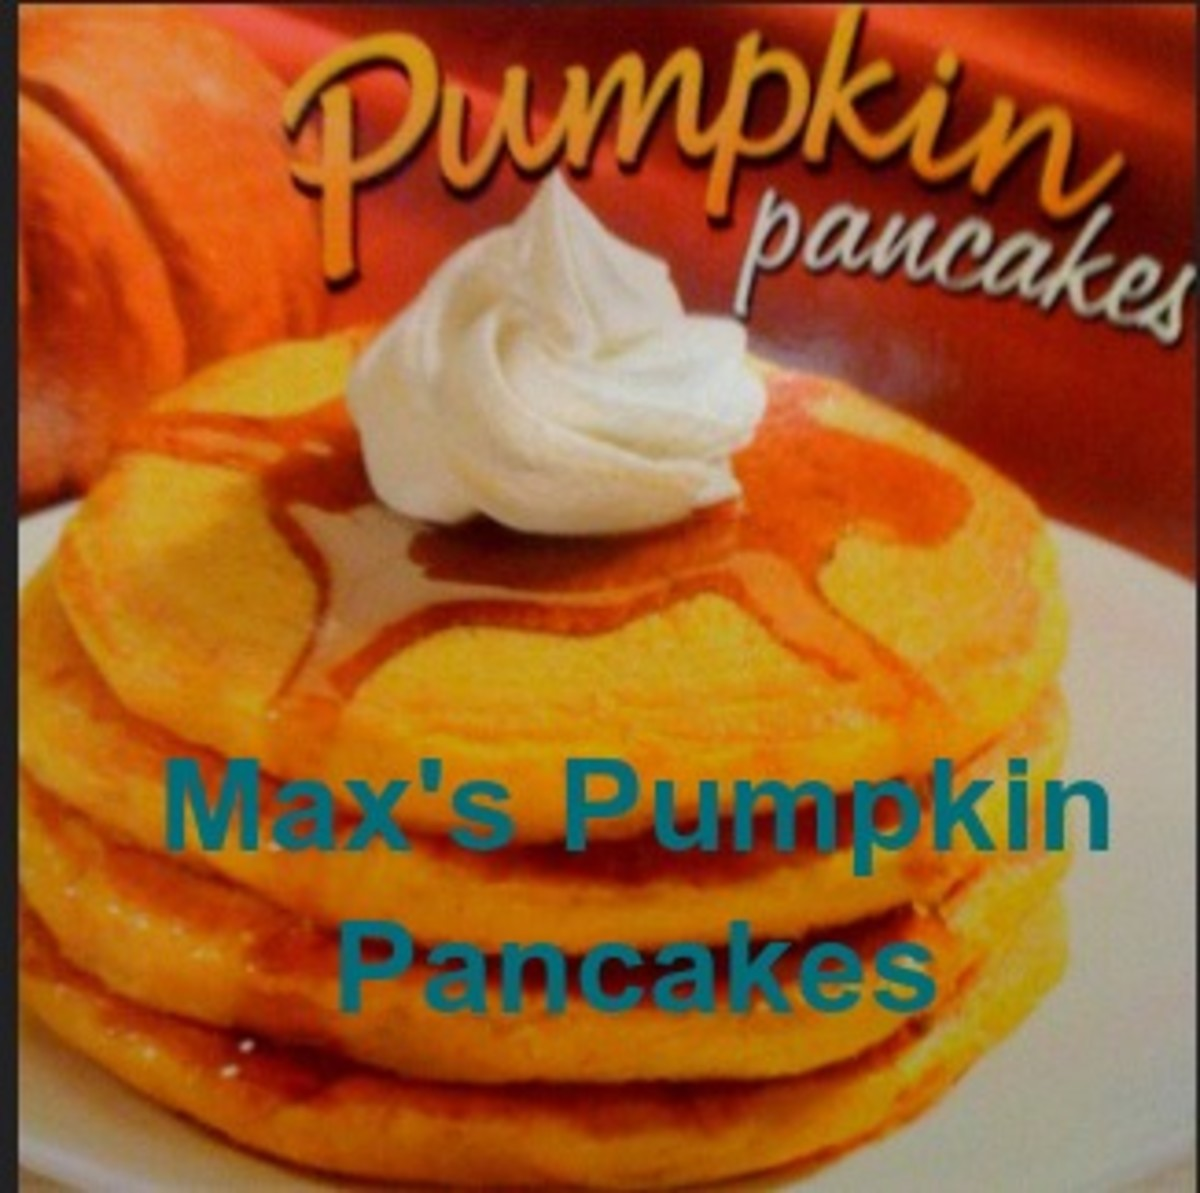 Pumpkin is wholesome and filling with many health benefits.